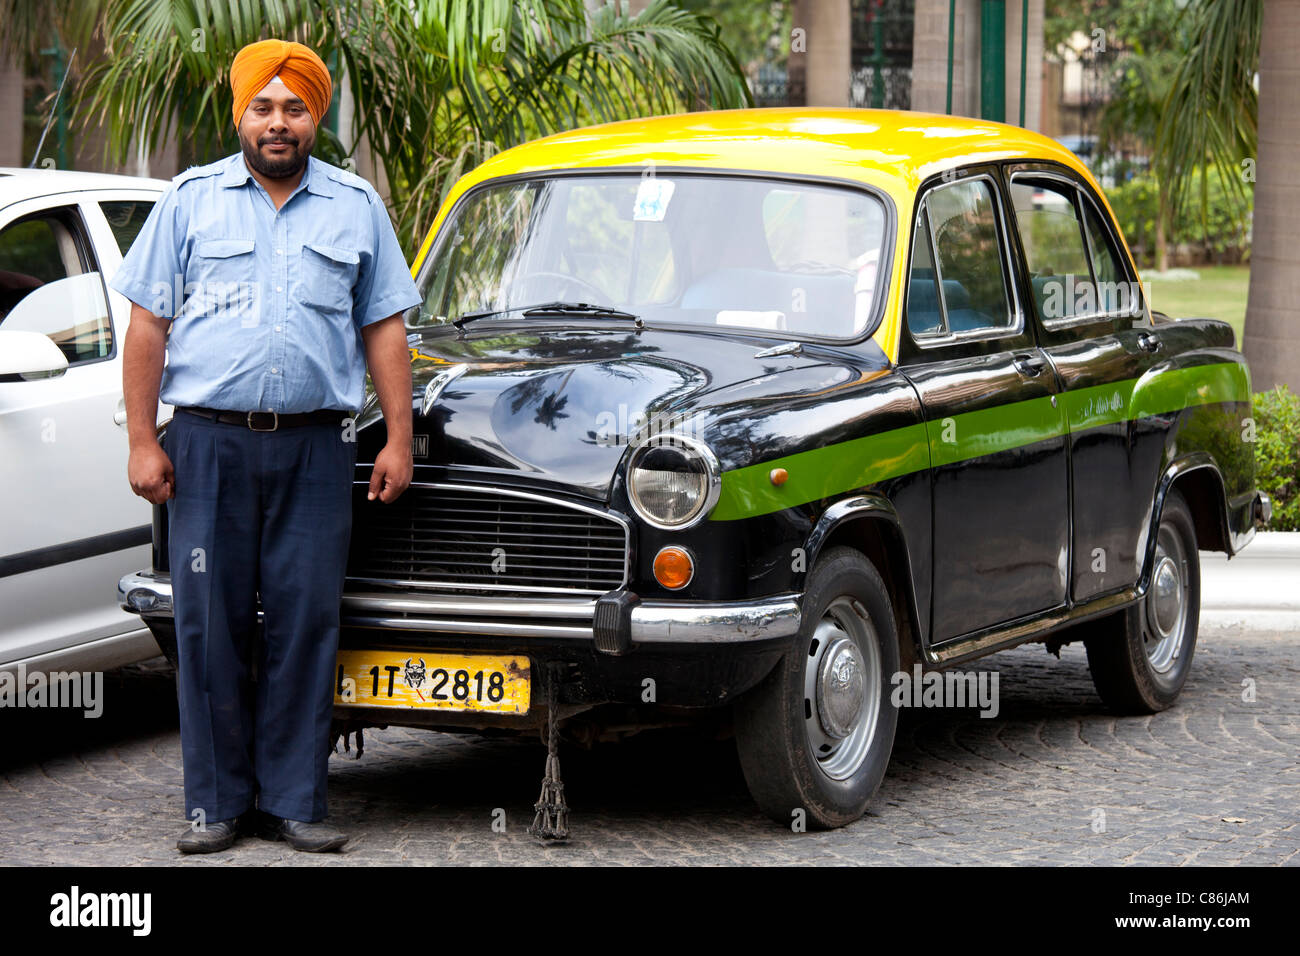 Sikh taxi driver with classic Ambassador taxi at The Imperial Hotel, New Delhi, India - Stock Image